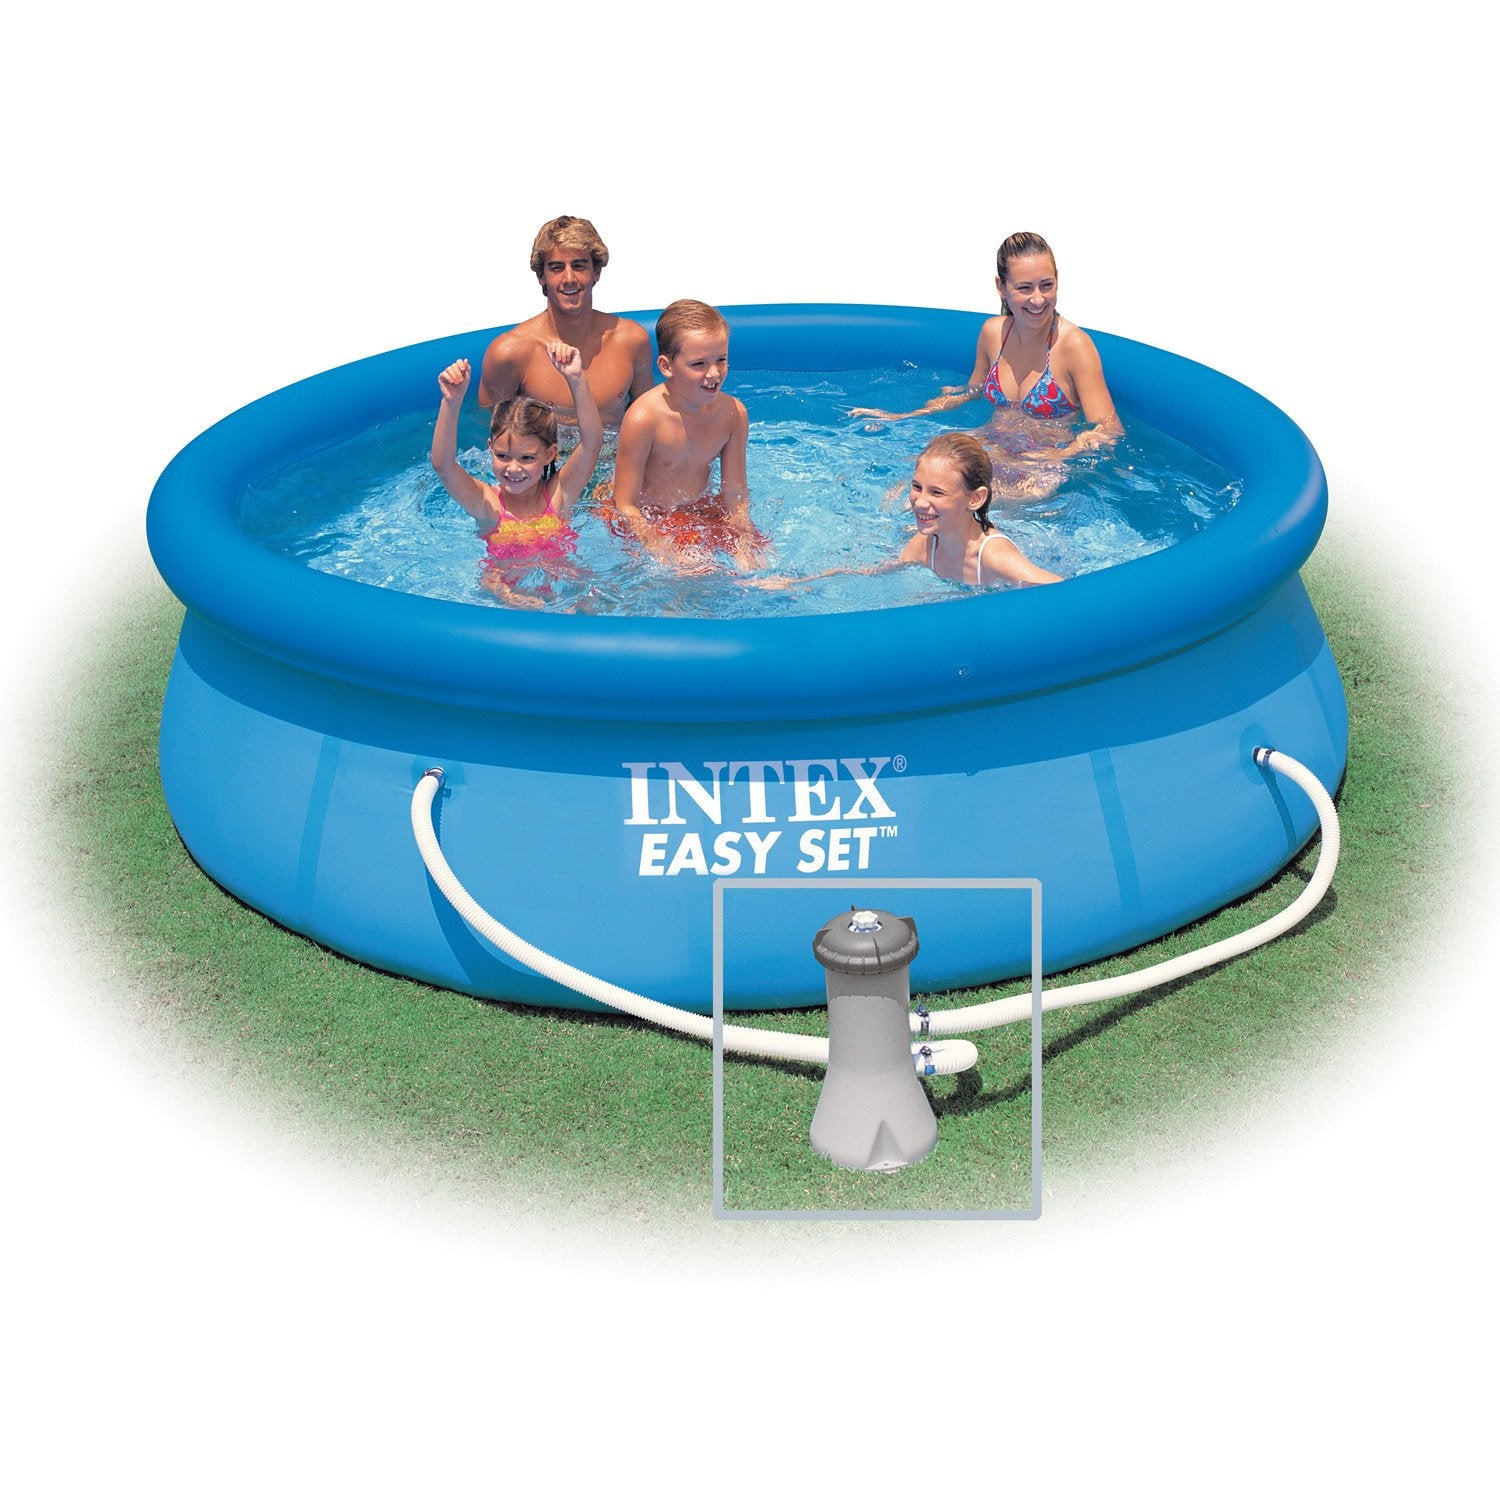 Piscine hors sol autoportante gonflable easy set intex for Piscine hors sol gardipool